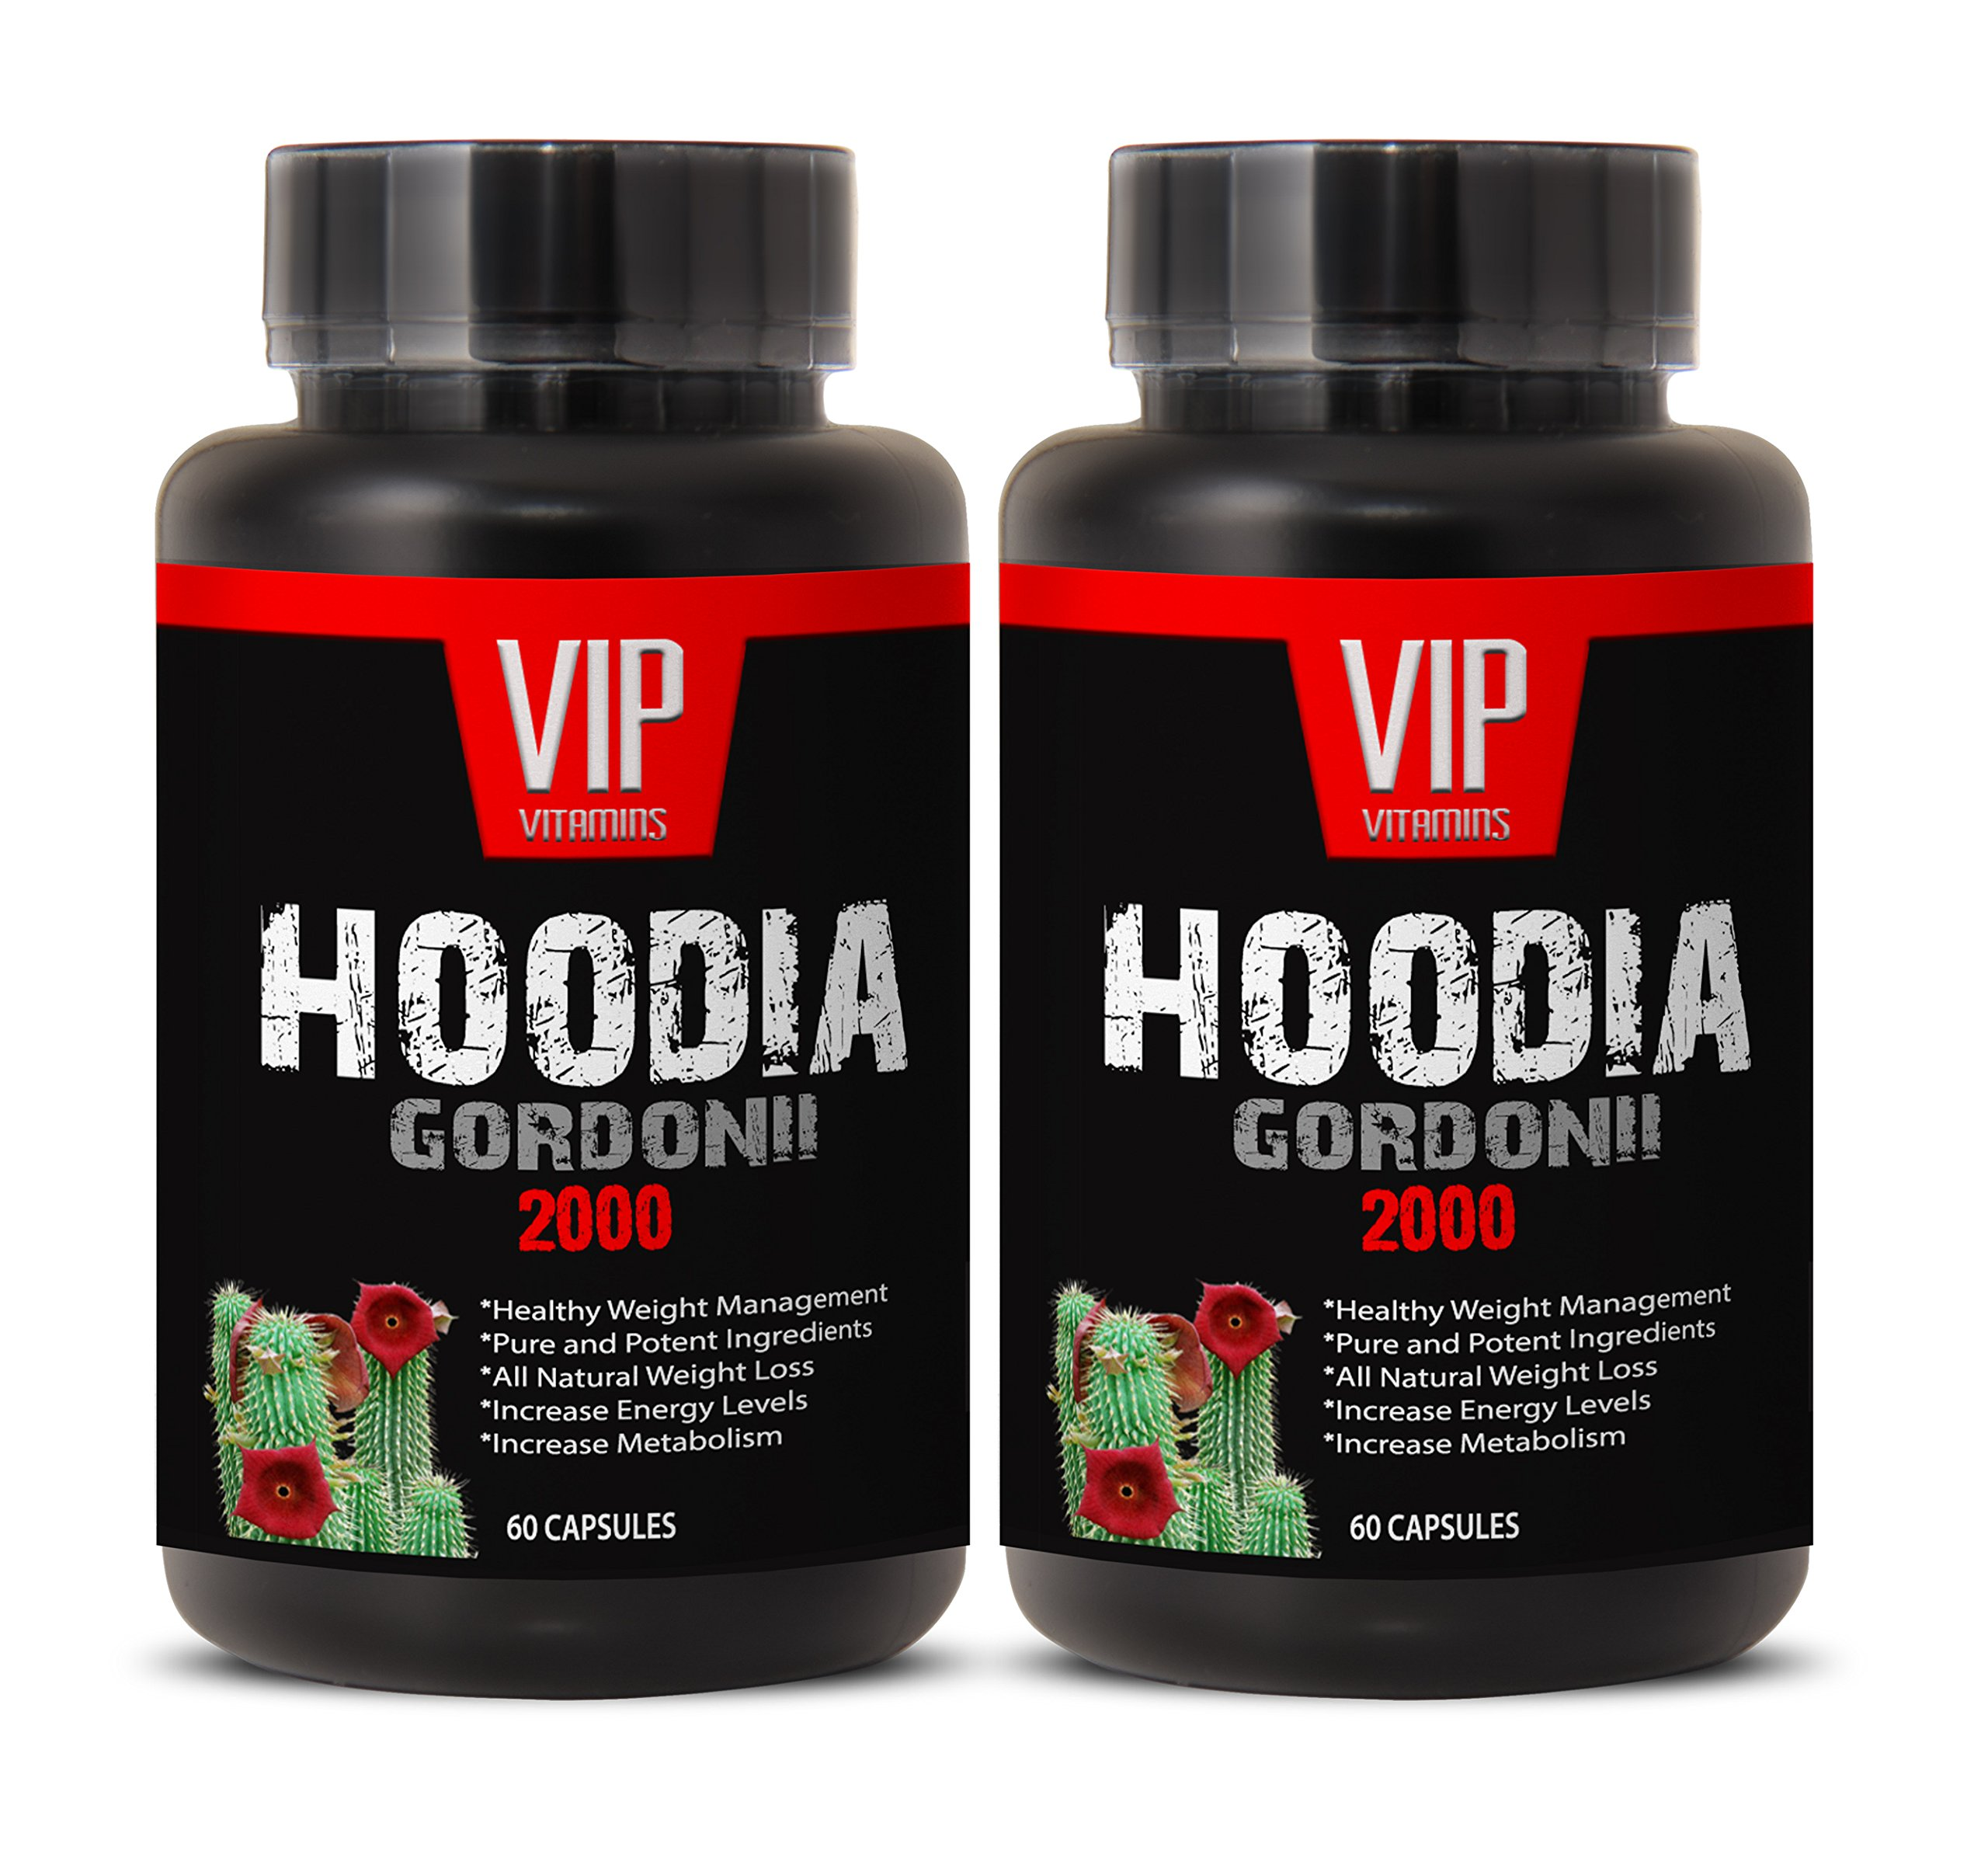 Super Hoodia Gordonii Power Extract- Pure Hoodia Gordonii Extract 2000mg - Hoodia Gordonii Highly Effective Appetite Suppressing (2 Bottles 120 Capsules)